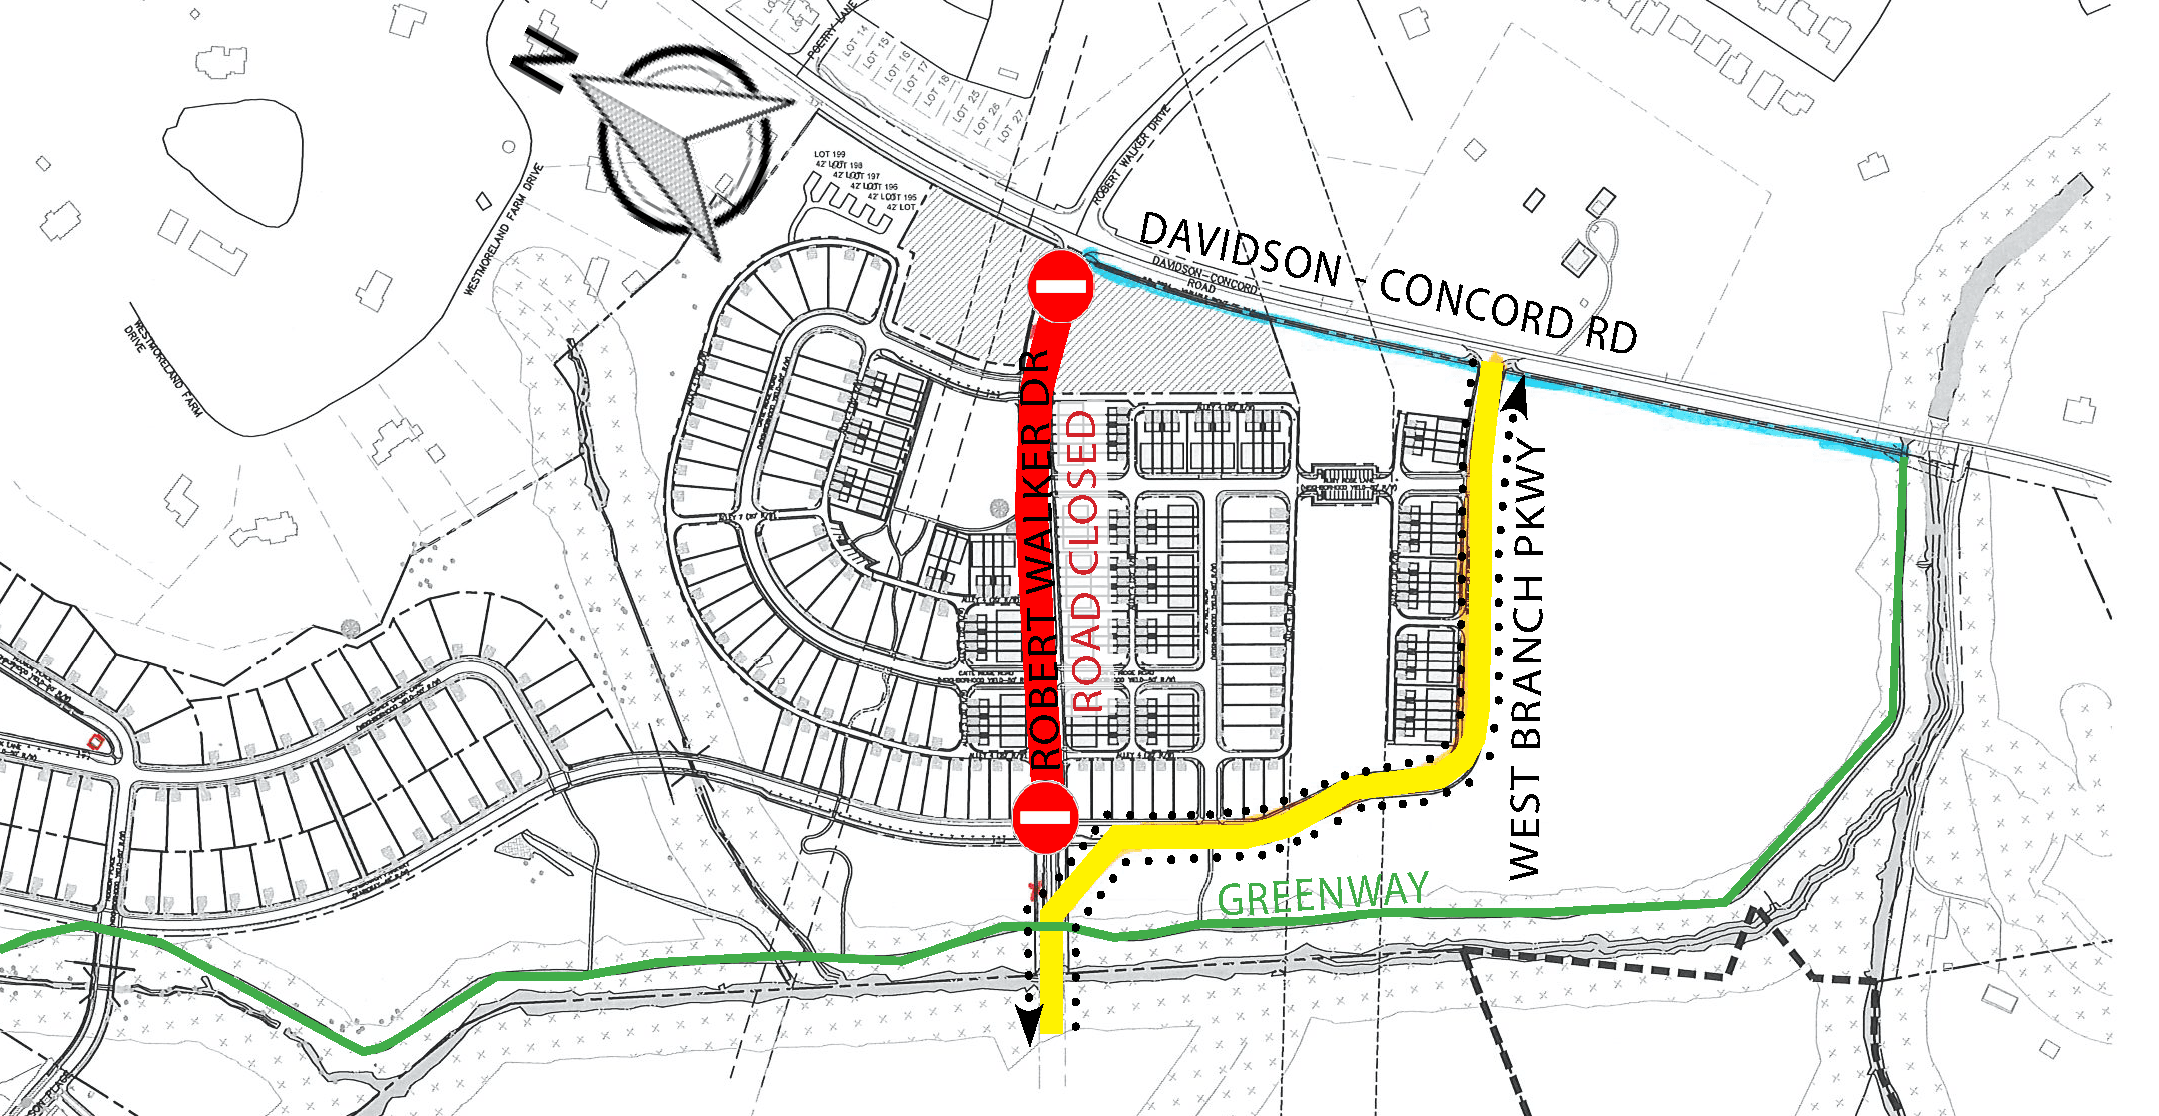 wb_roadclosure